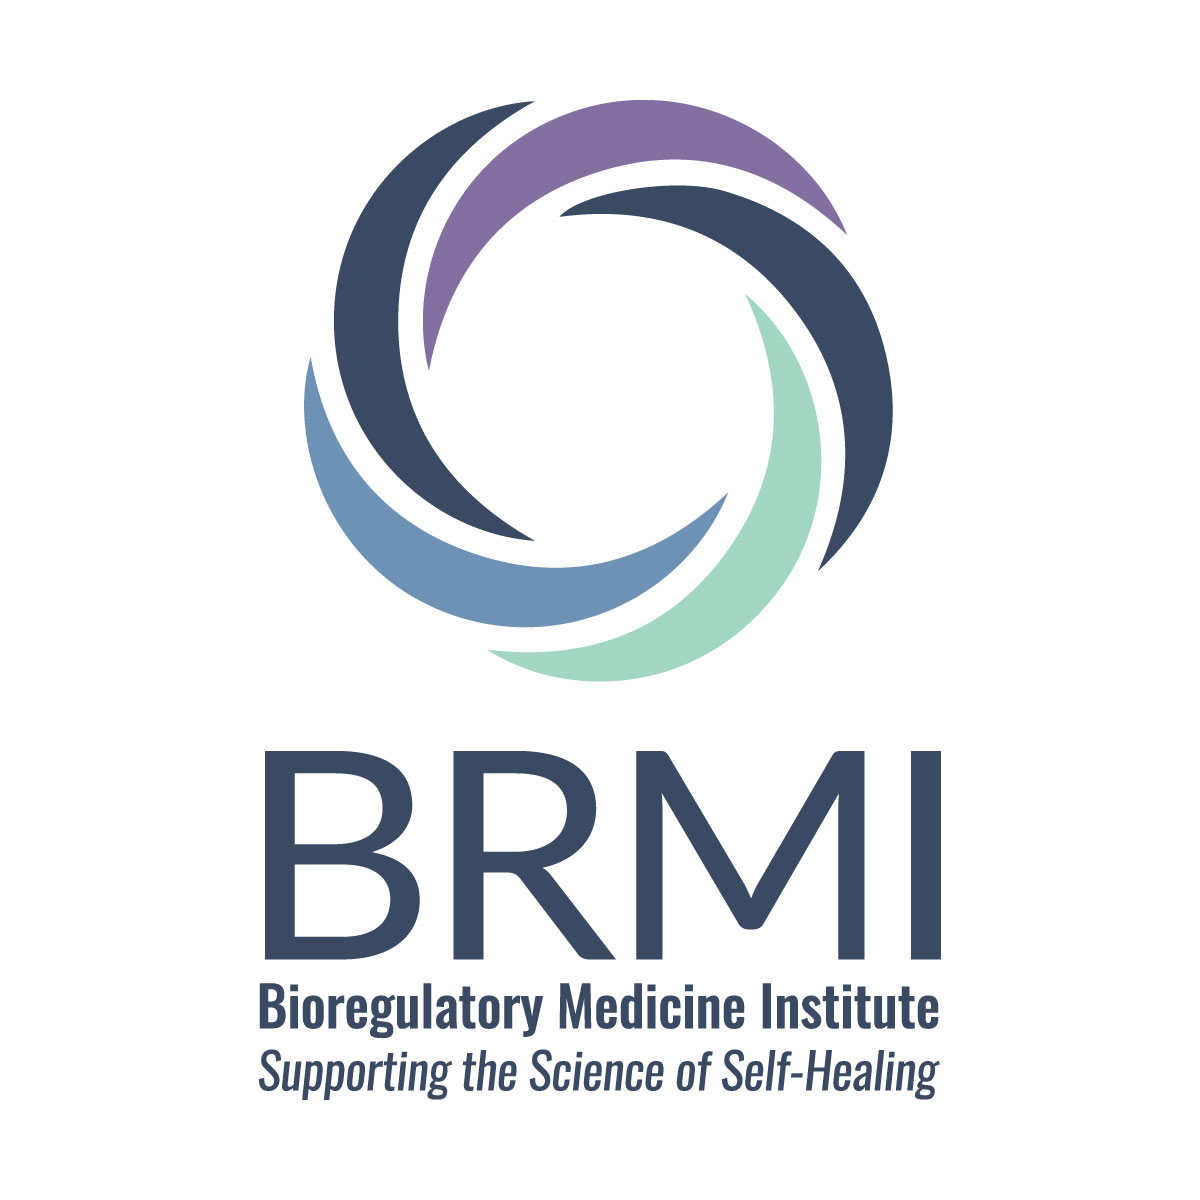 Bioregulatory Programs At The Marion Institute Expand With BRMI, The Bioregulatory Medicine Institute